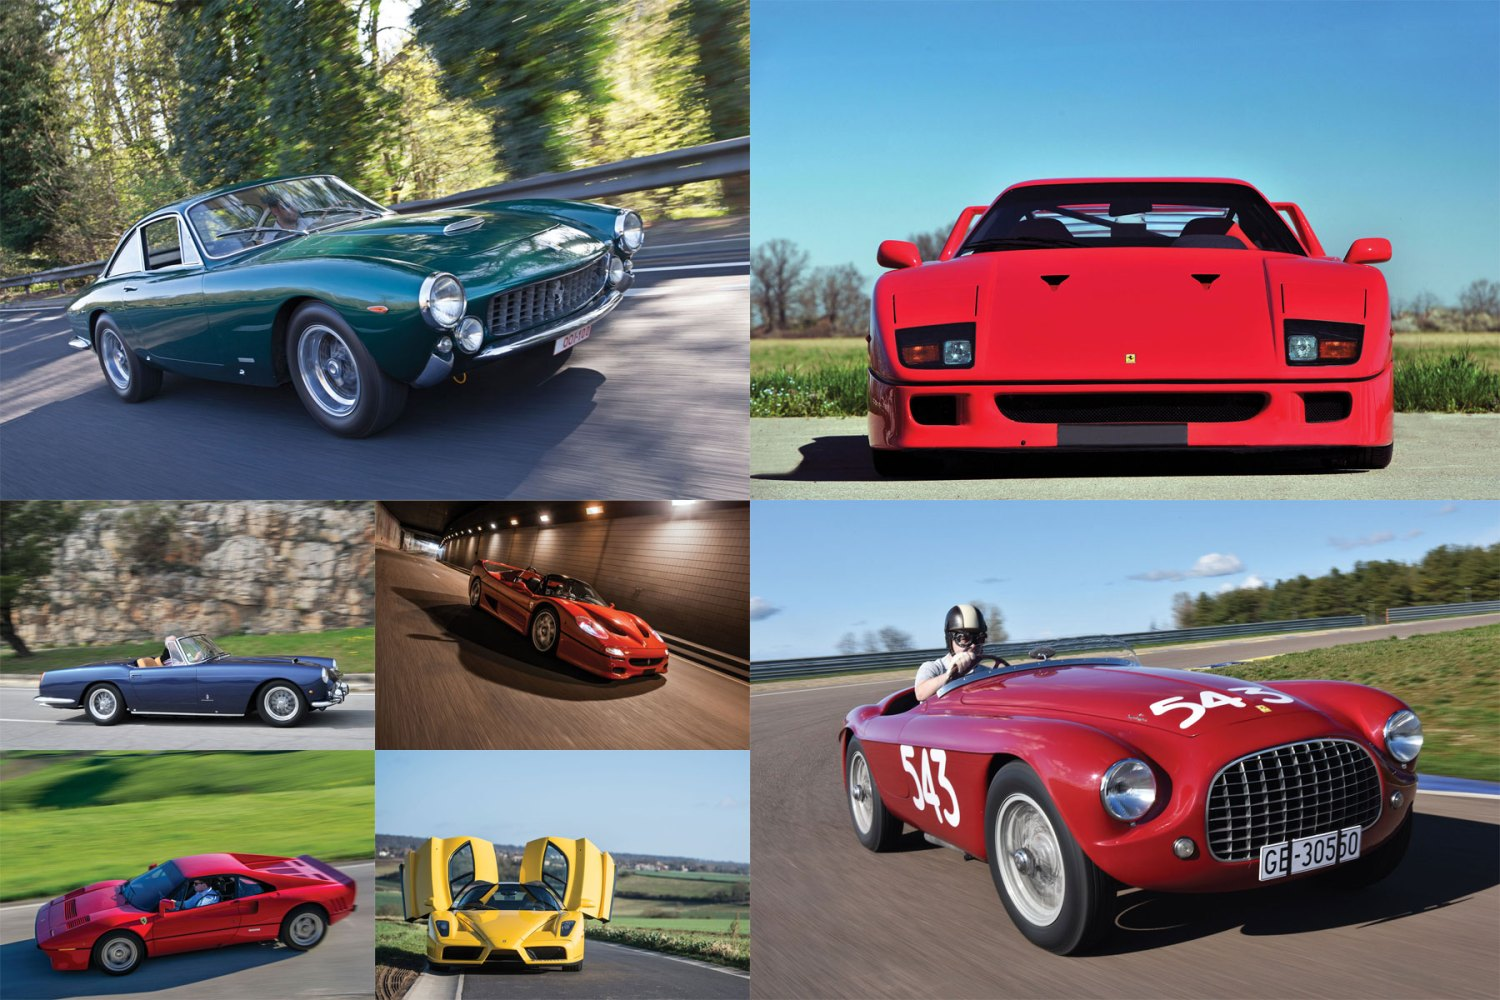 7 Ferraris scoop the Euromillions jackpot at Villa Erba